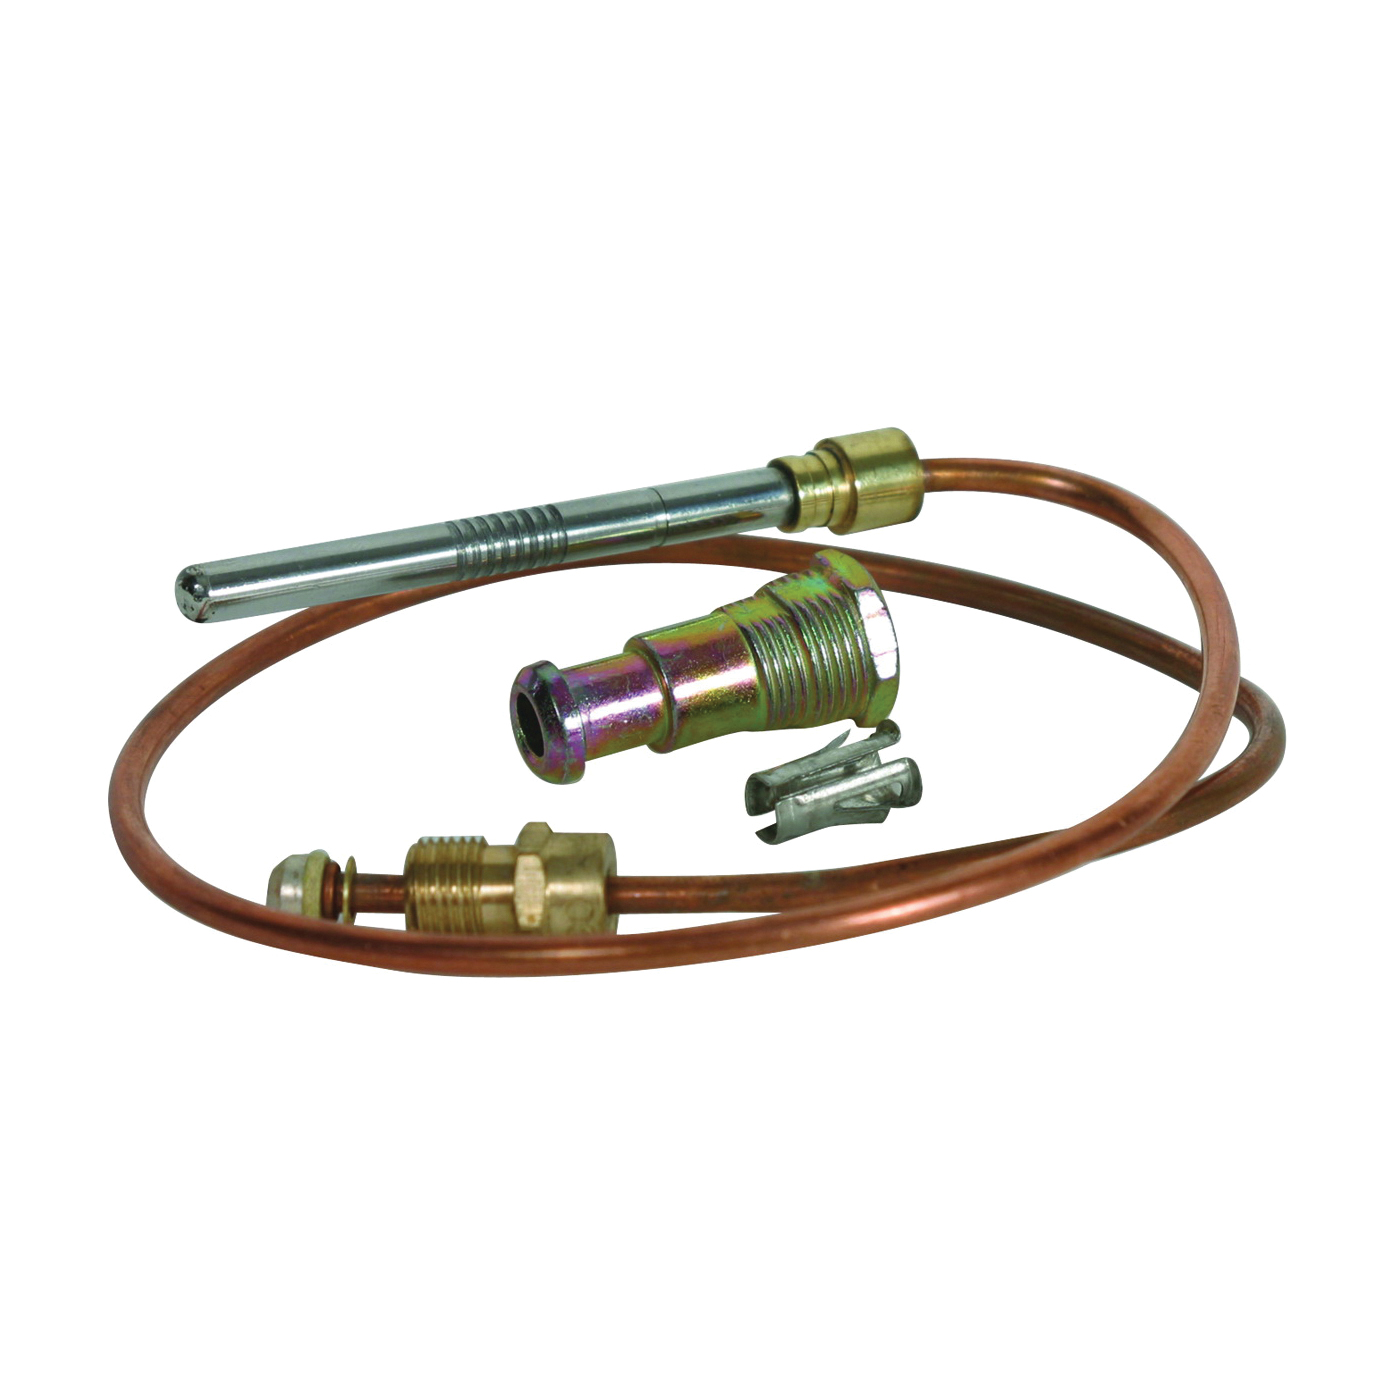 Picture of CAMCO 09273 Universal Thermocouple Kit, For: RV LP Gas Water Heaters and Furnaces